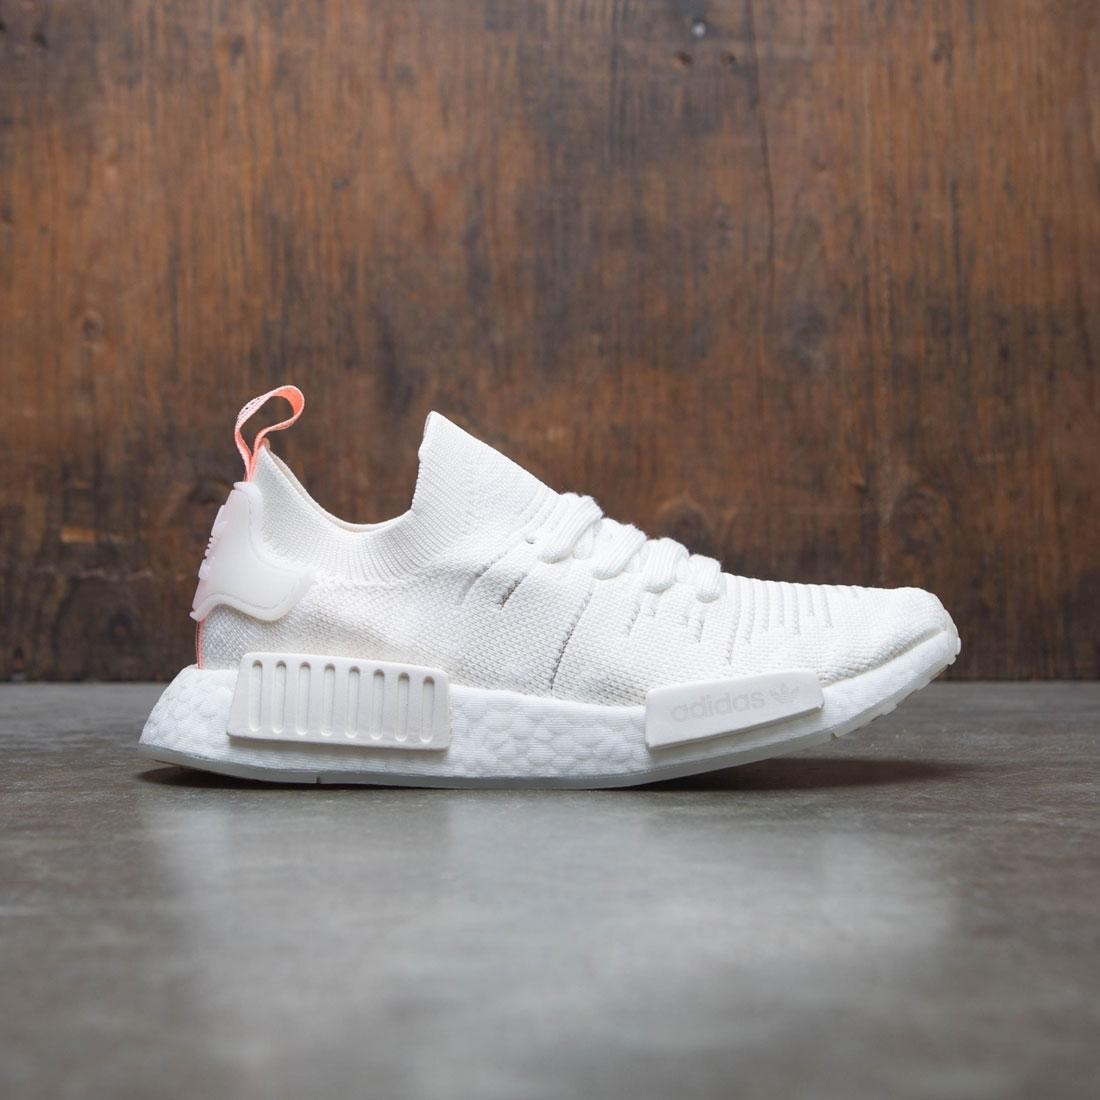 6959d965eed06 Adidas Women NMD R1 STLT PK W white cloud white clear orange